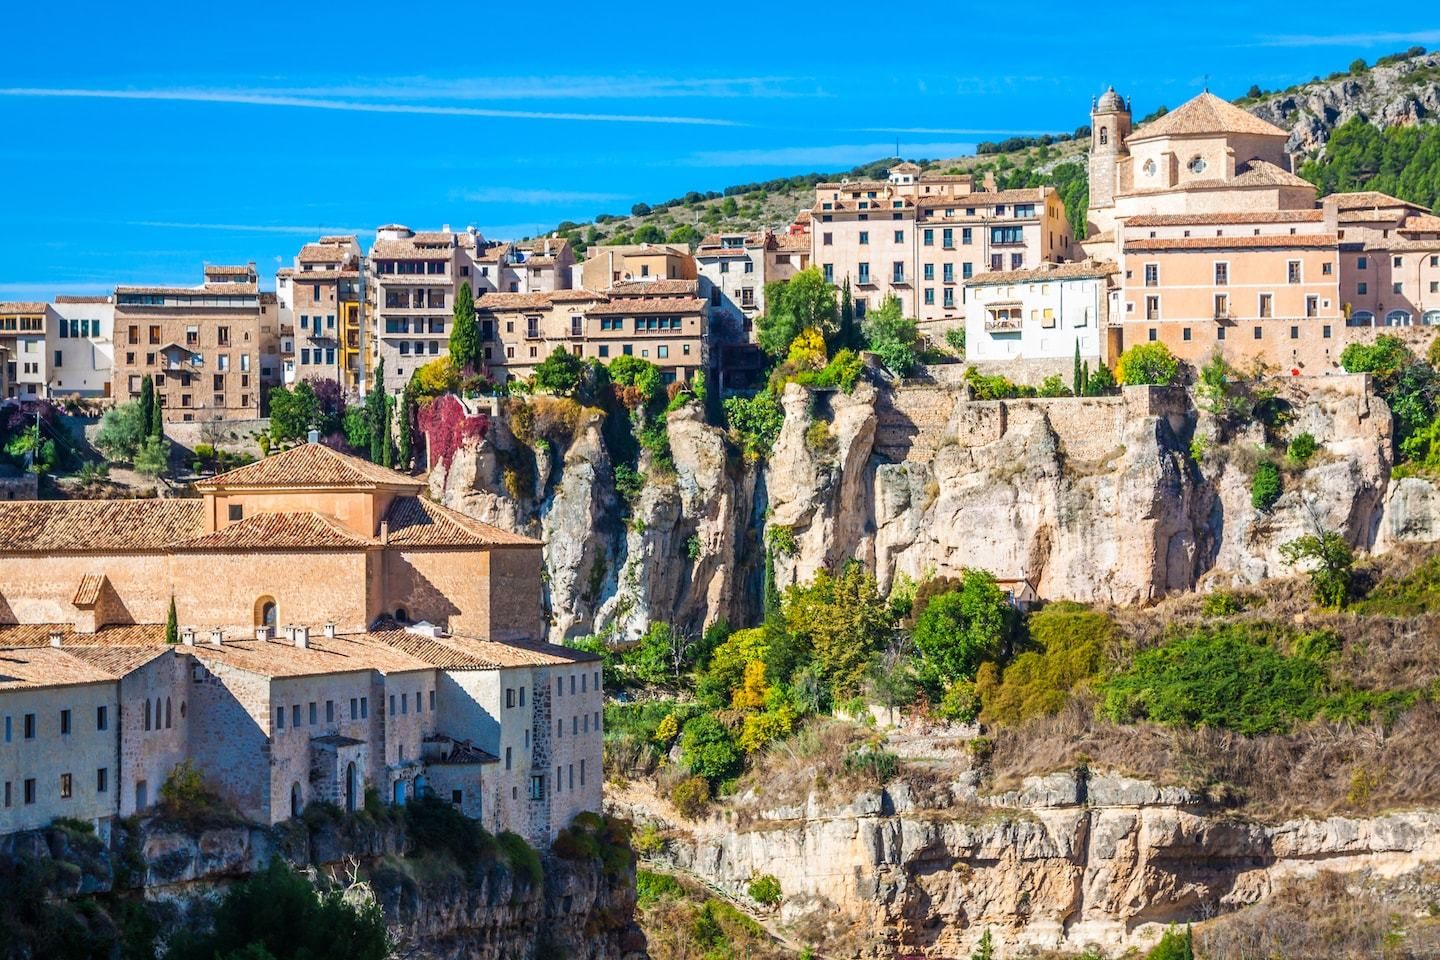 hanging houses on the side of a cliff in cuenca spain